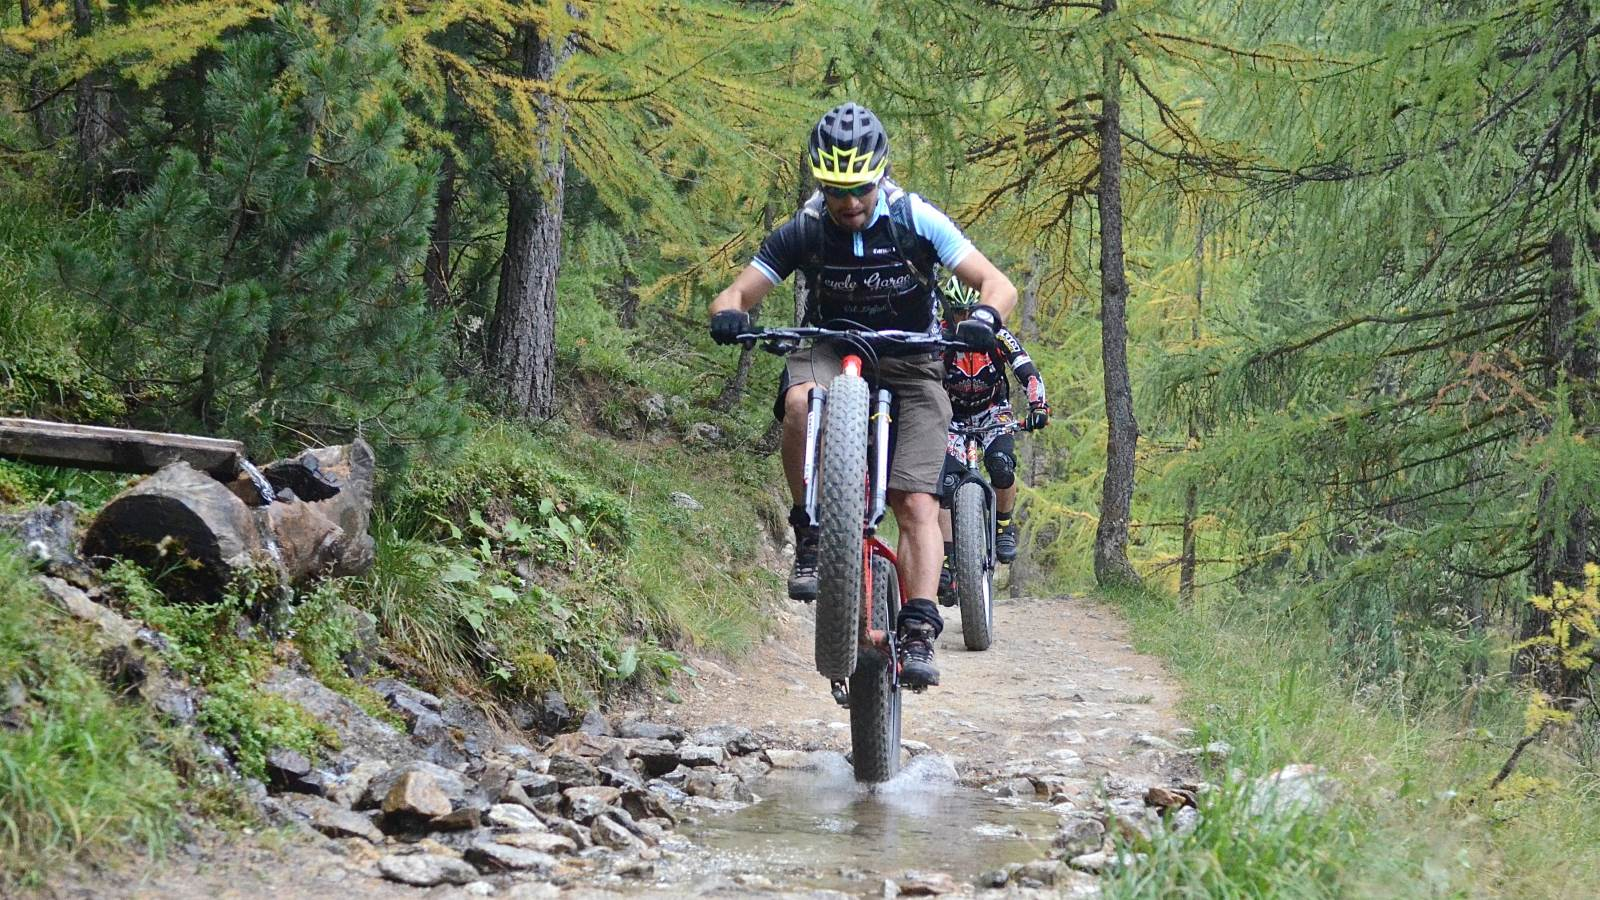 Divertirsi in mountain bike